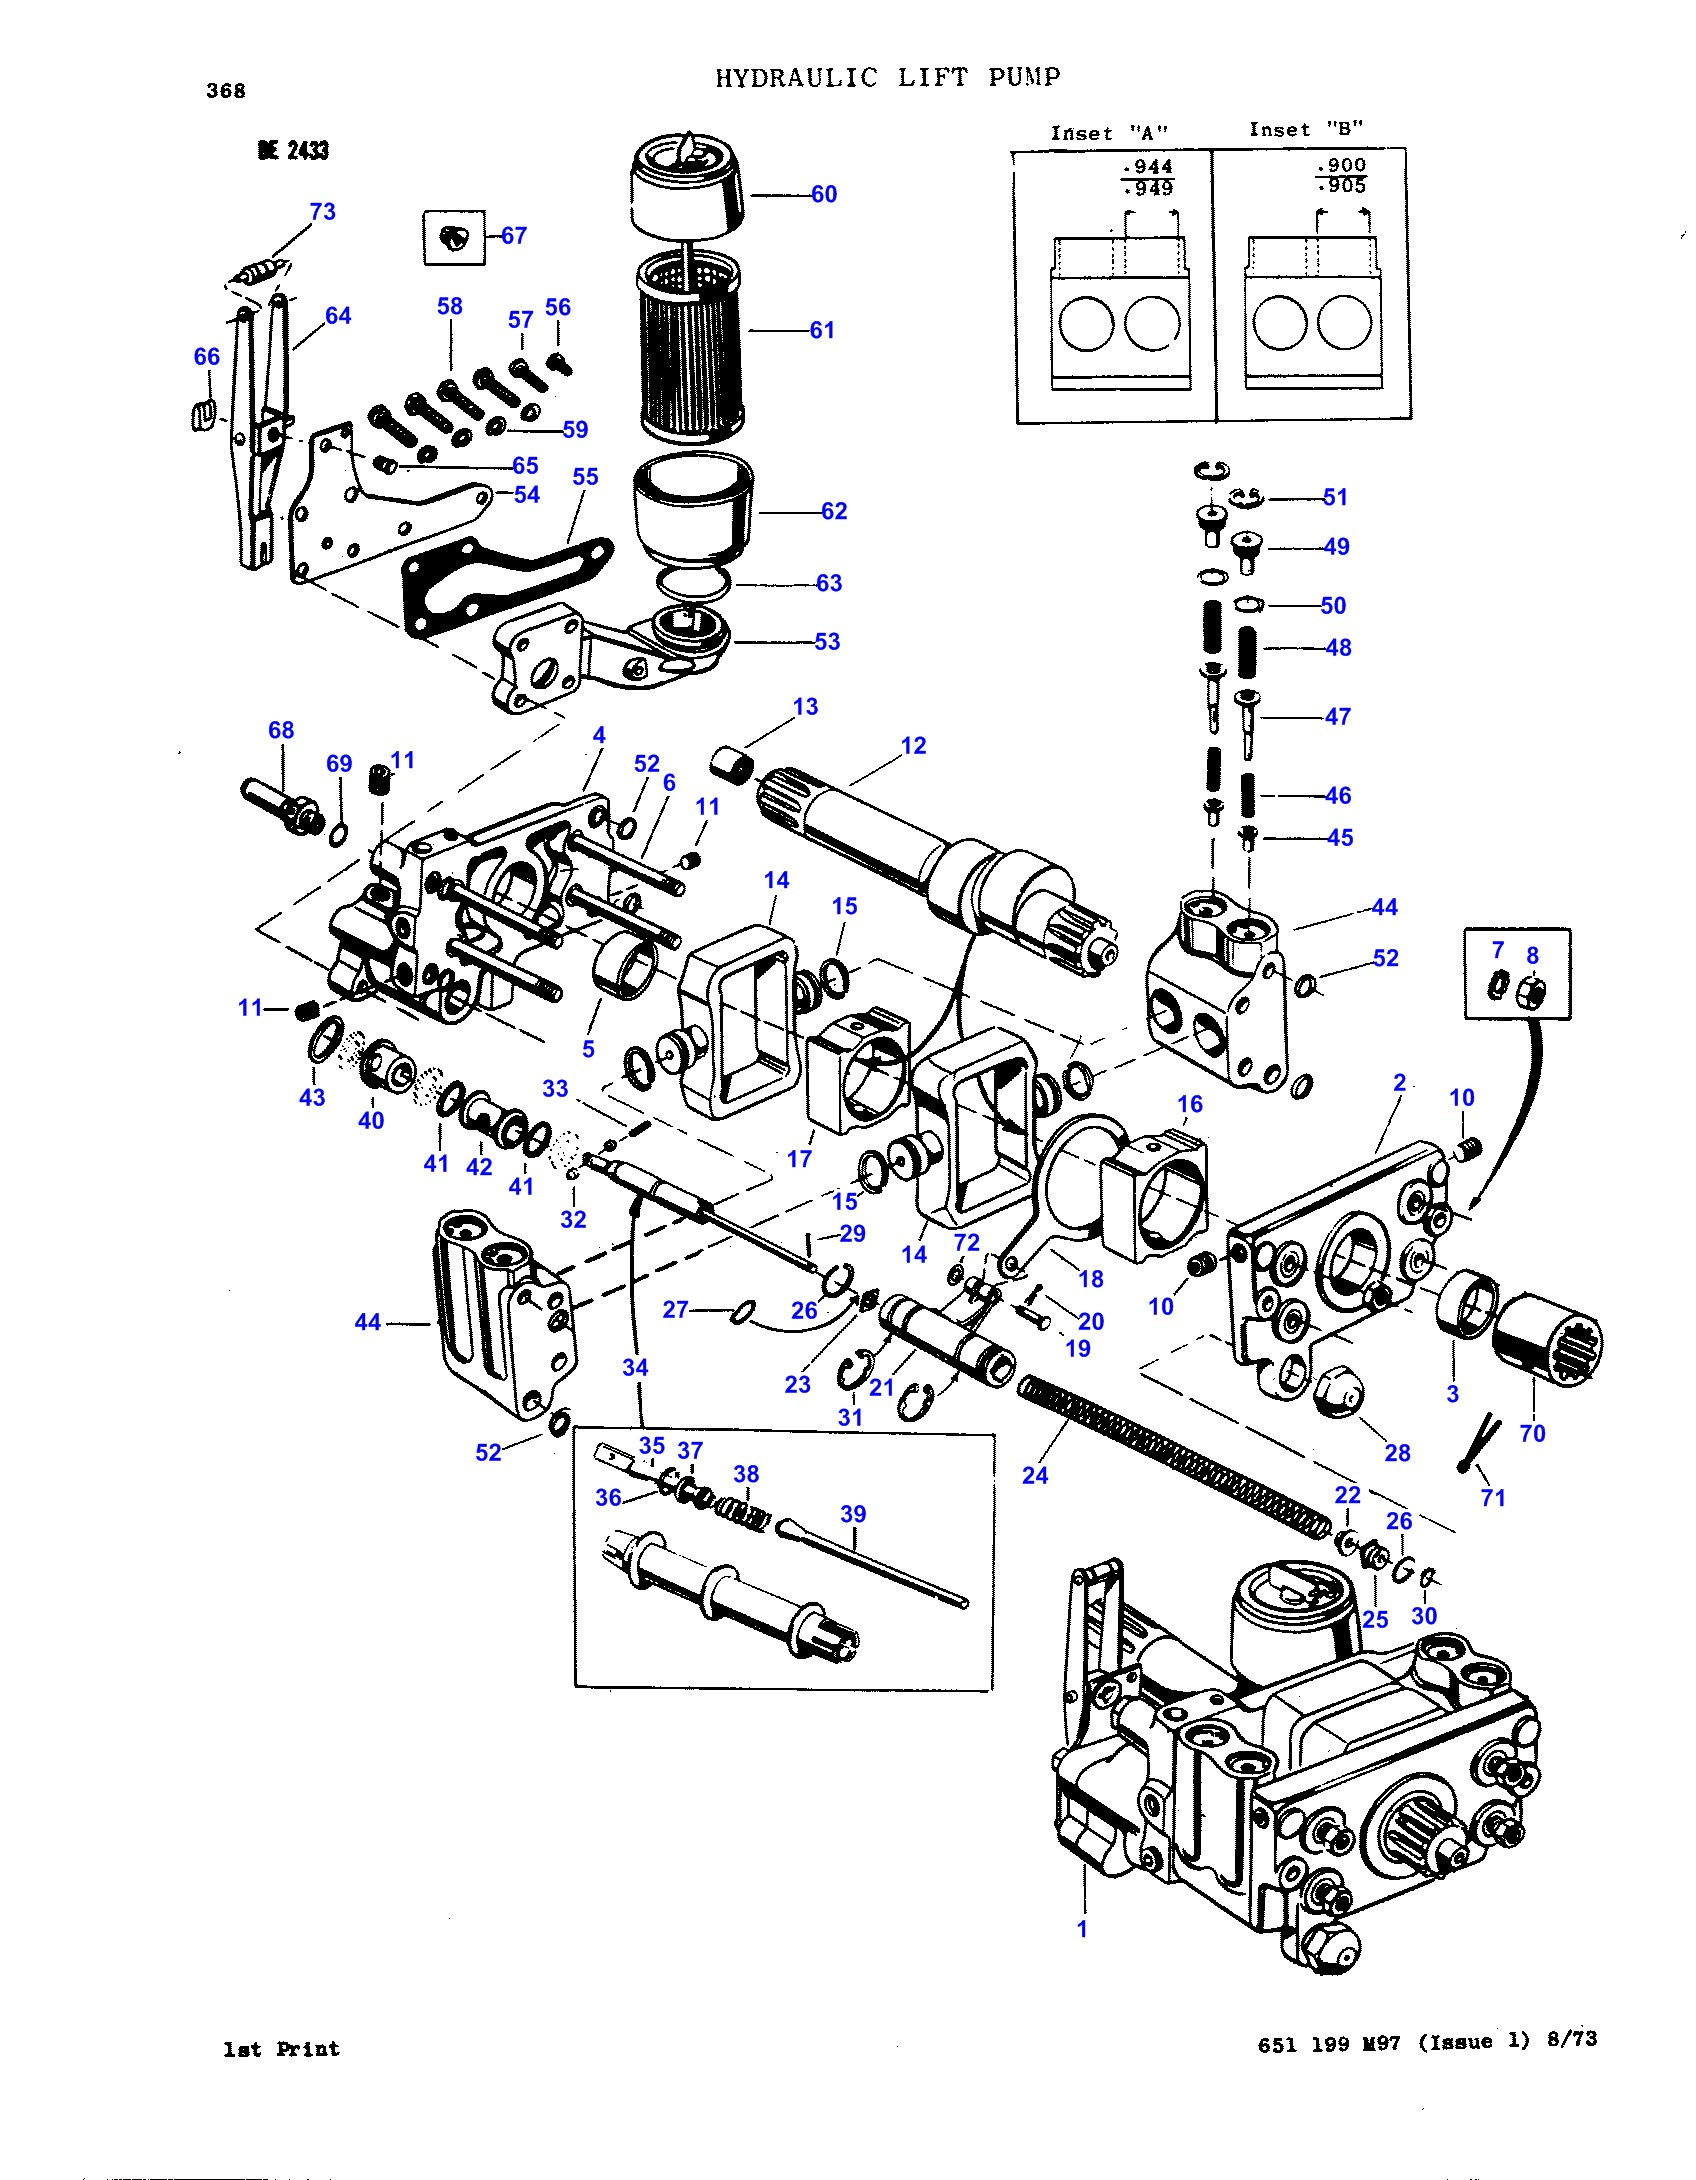 Hydraulic Pump Diagram My Wiring Diagram